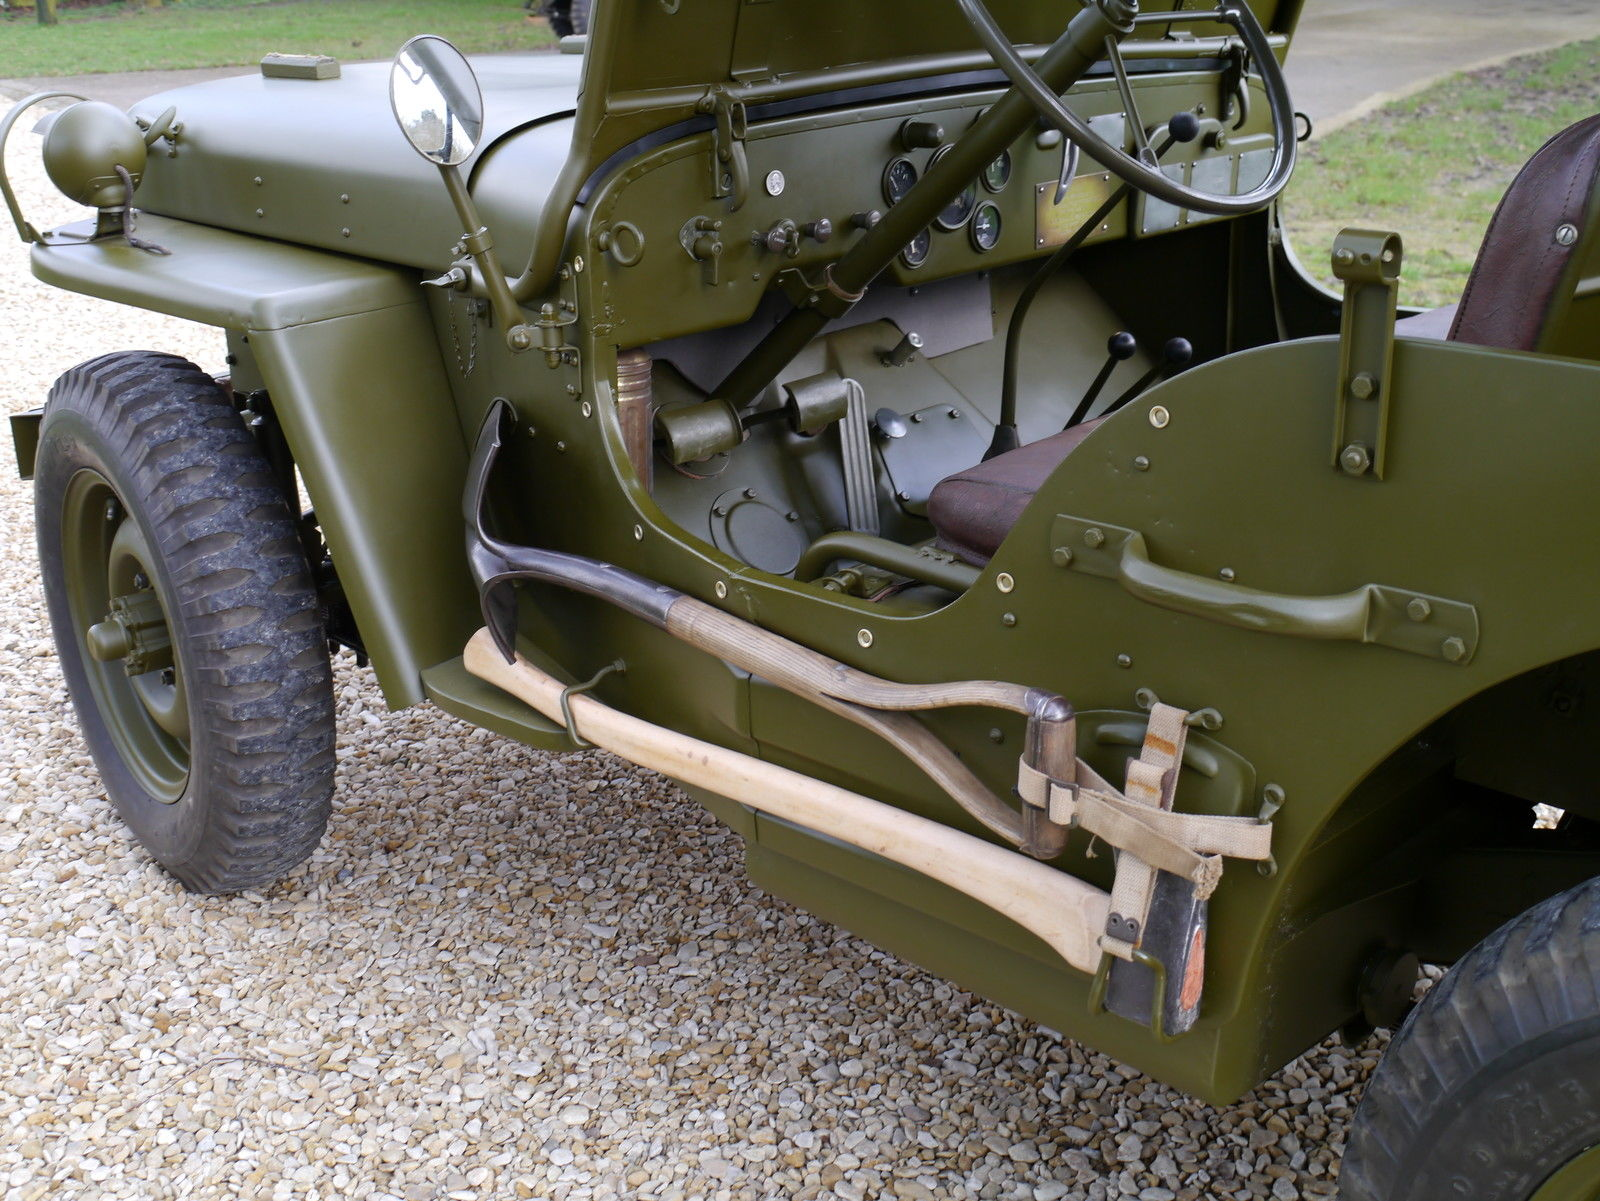 Willys Military Jeep Sale >> You Can Buy Dwight Eisenhower's Willys Jeep for $750k on eBay - autoevolution